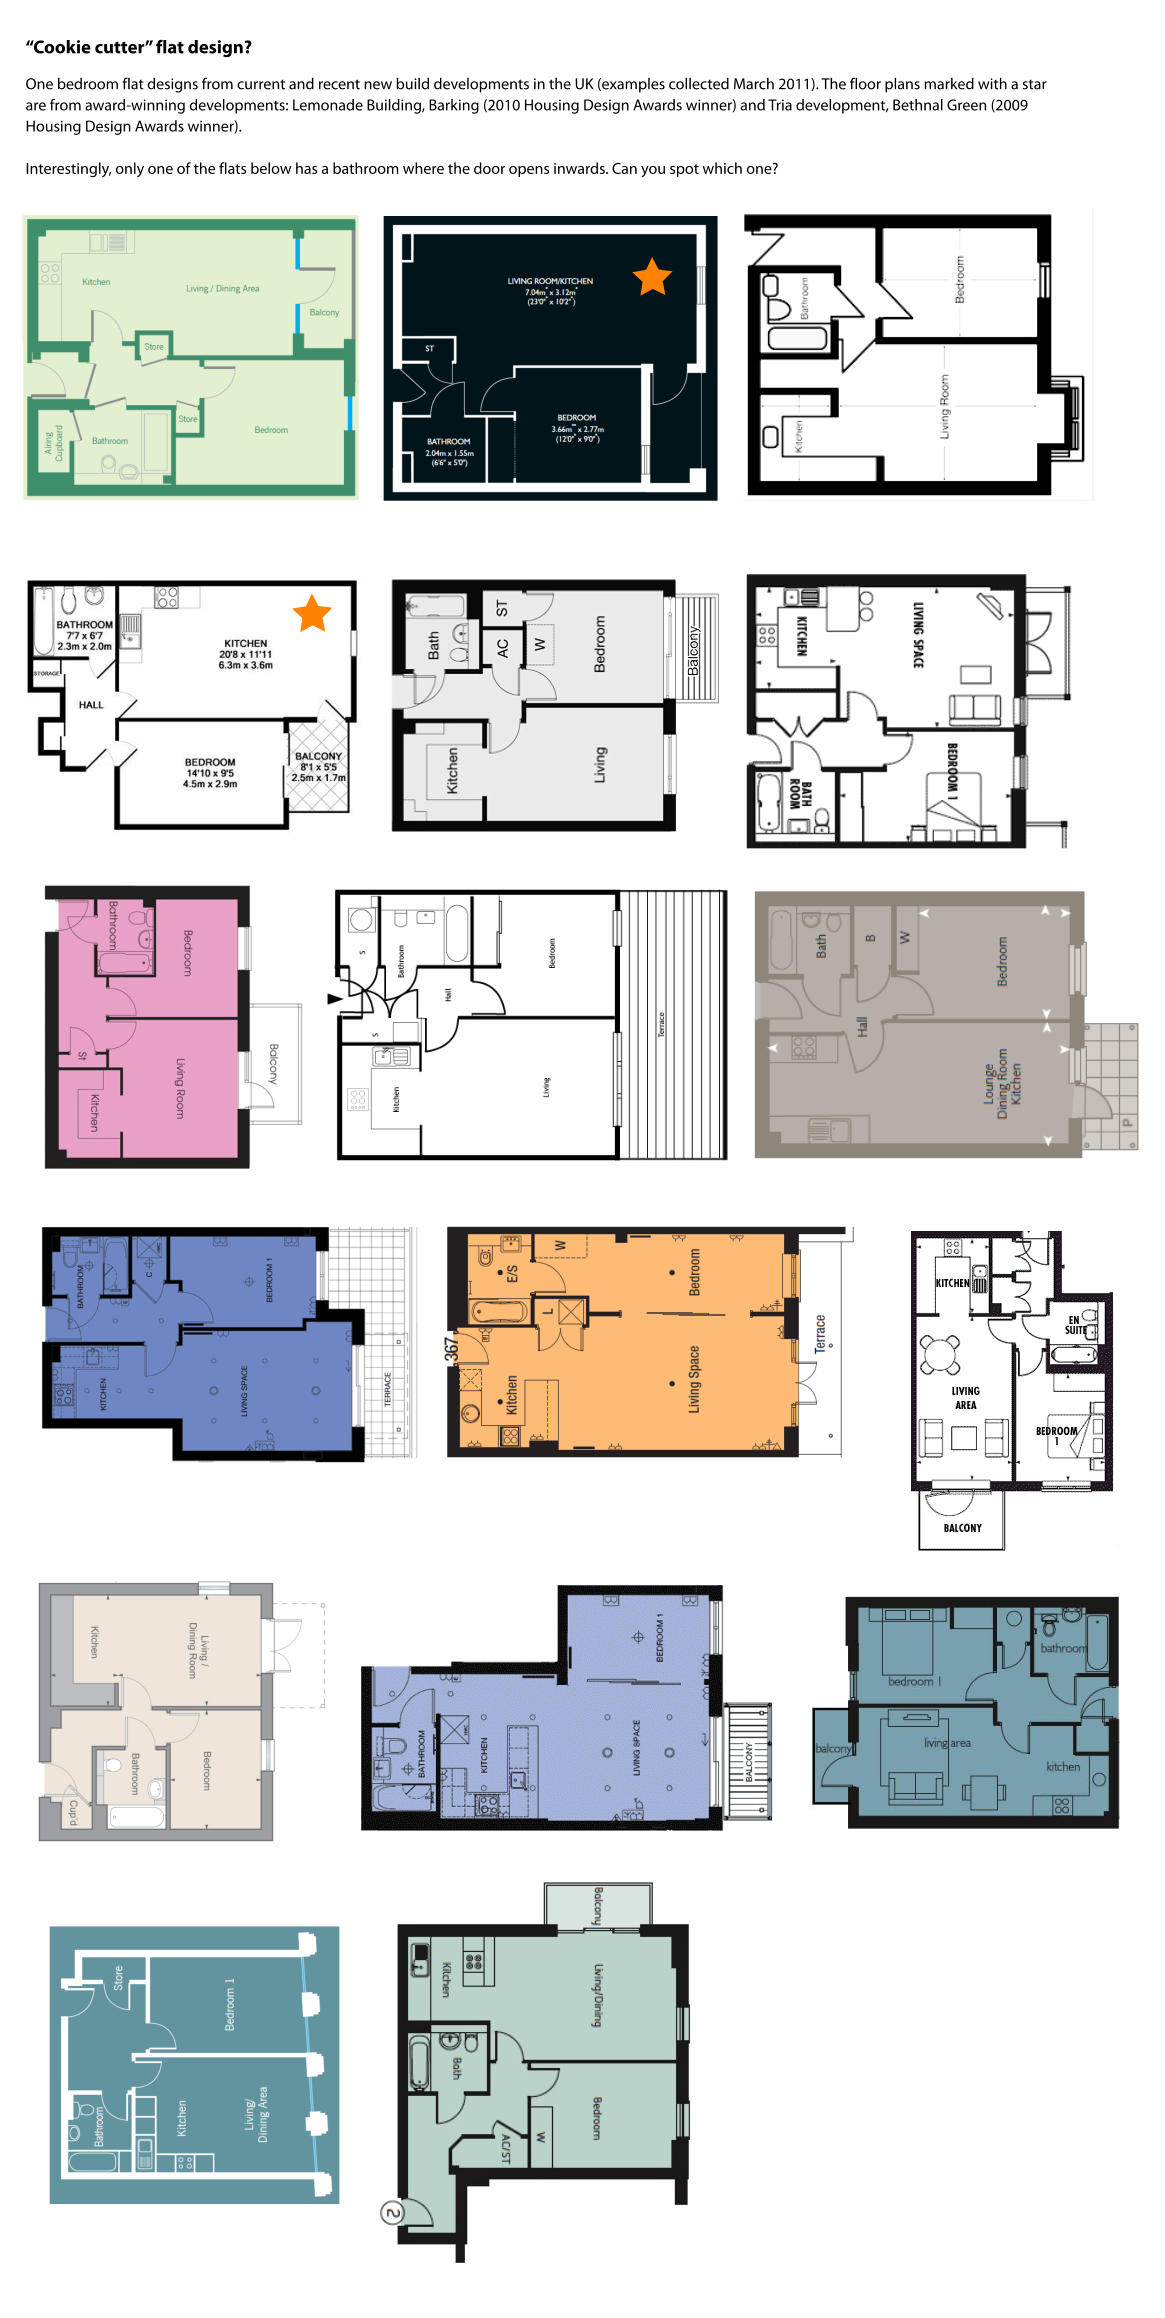 1 Bedroom Flat Layout